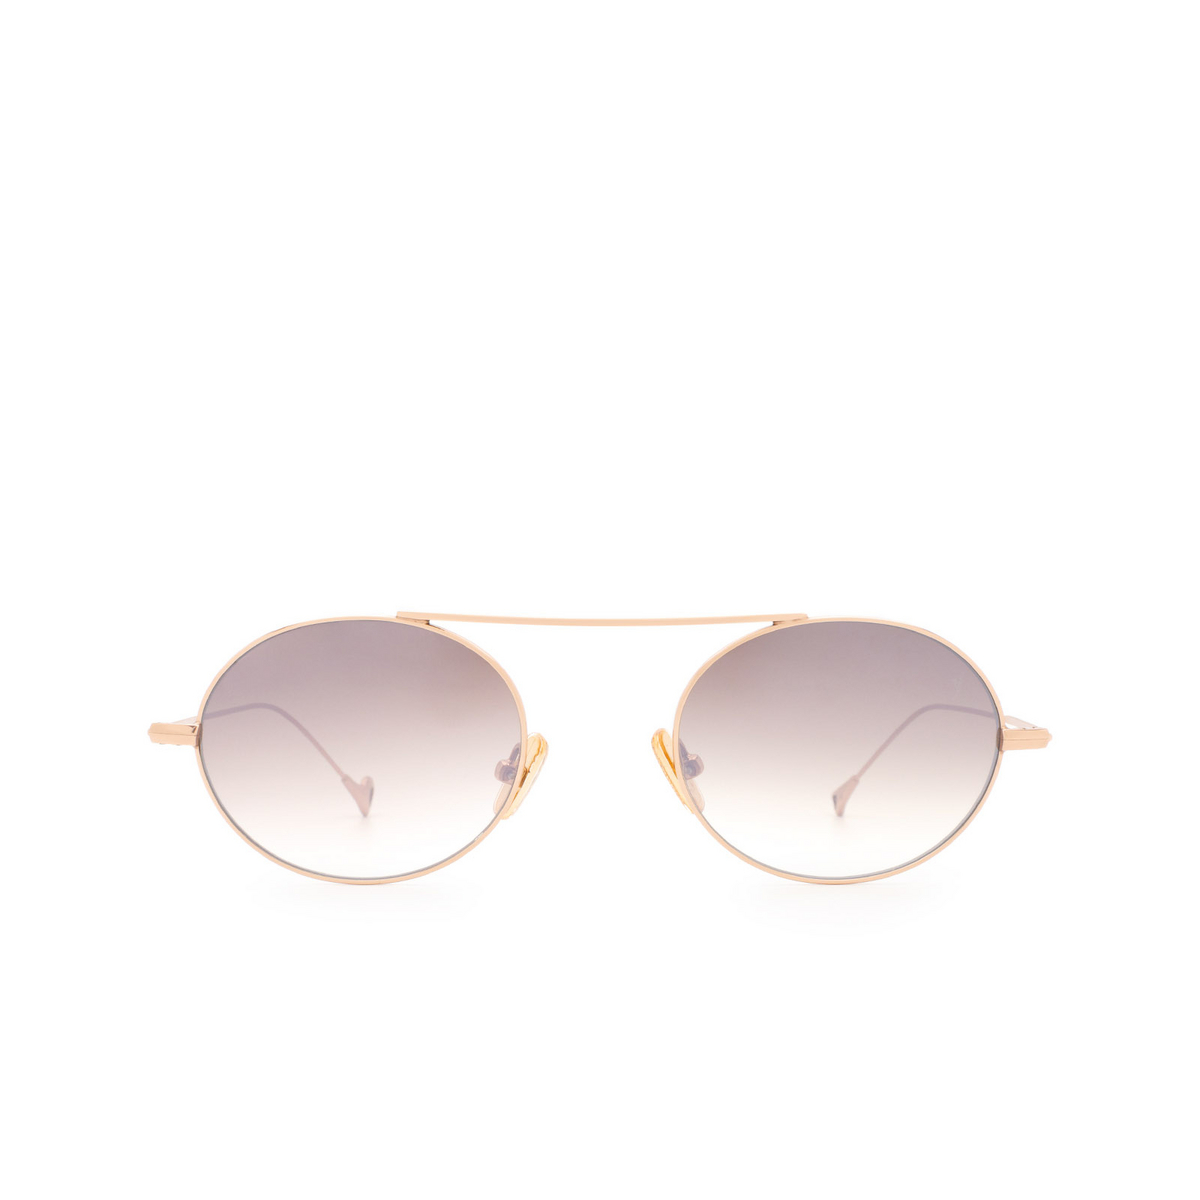 Eyepetizer® Oval Sunglasses: S.eularia color Rose Gold C.9-18F - front view.